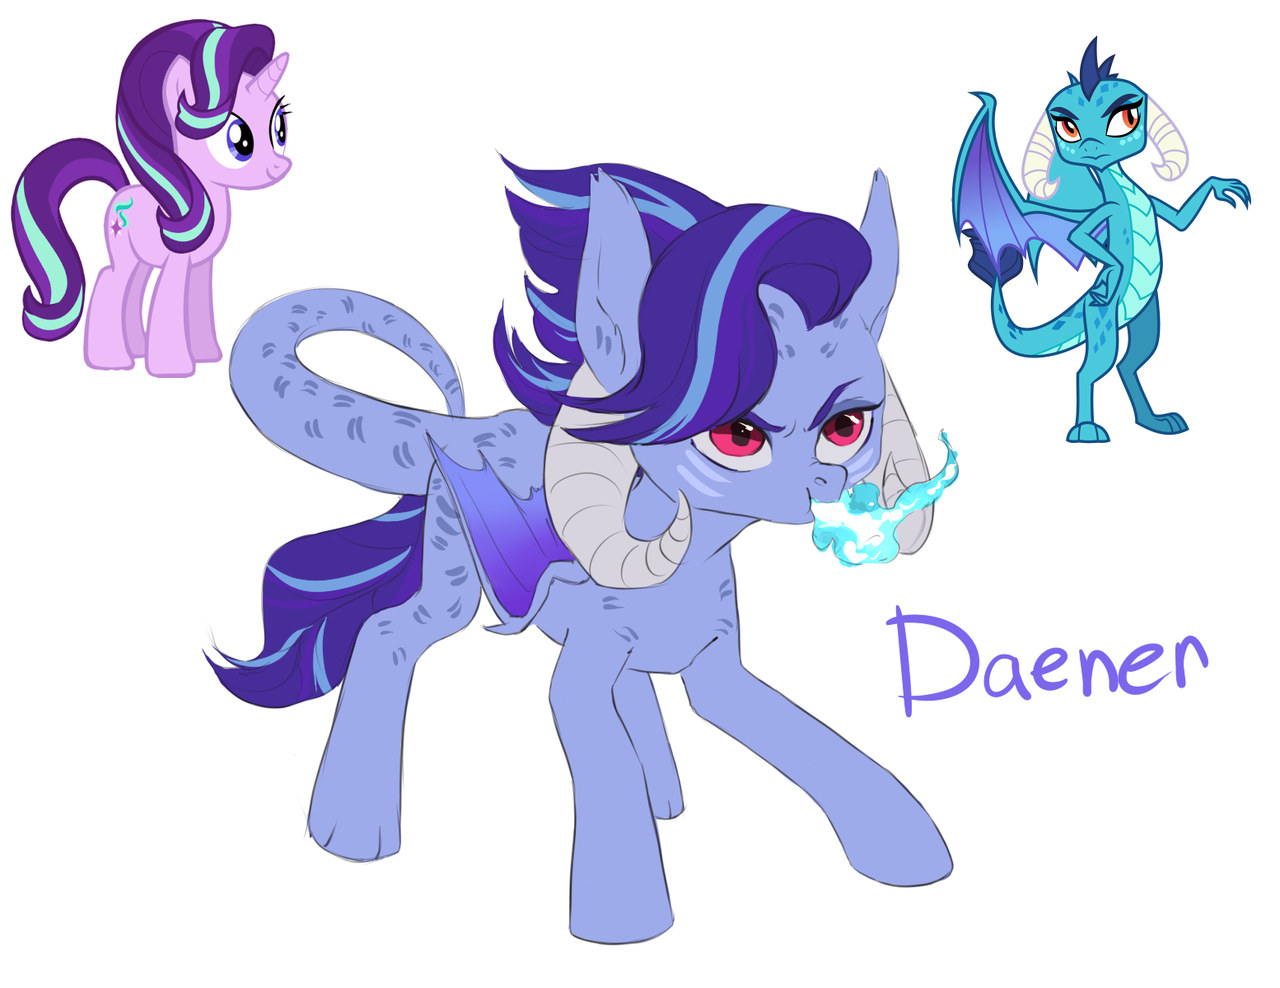 1519192 Artist Halfthecat Dracony Dragon Fire Breath Fusion Hybrid Pony Princess Ember Safe Smiling Starlight Glimmer